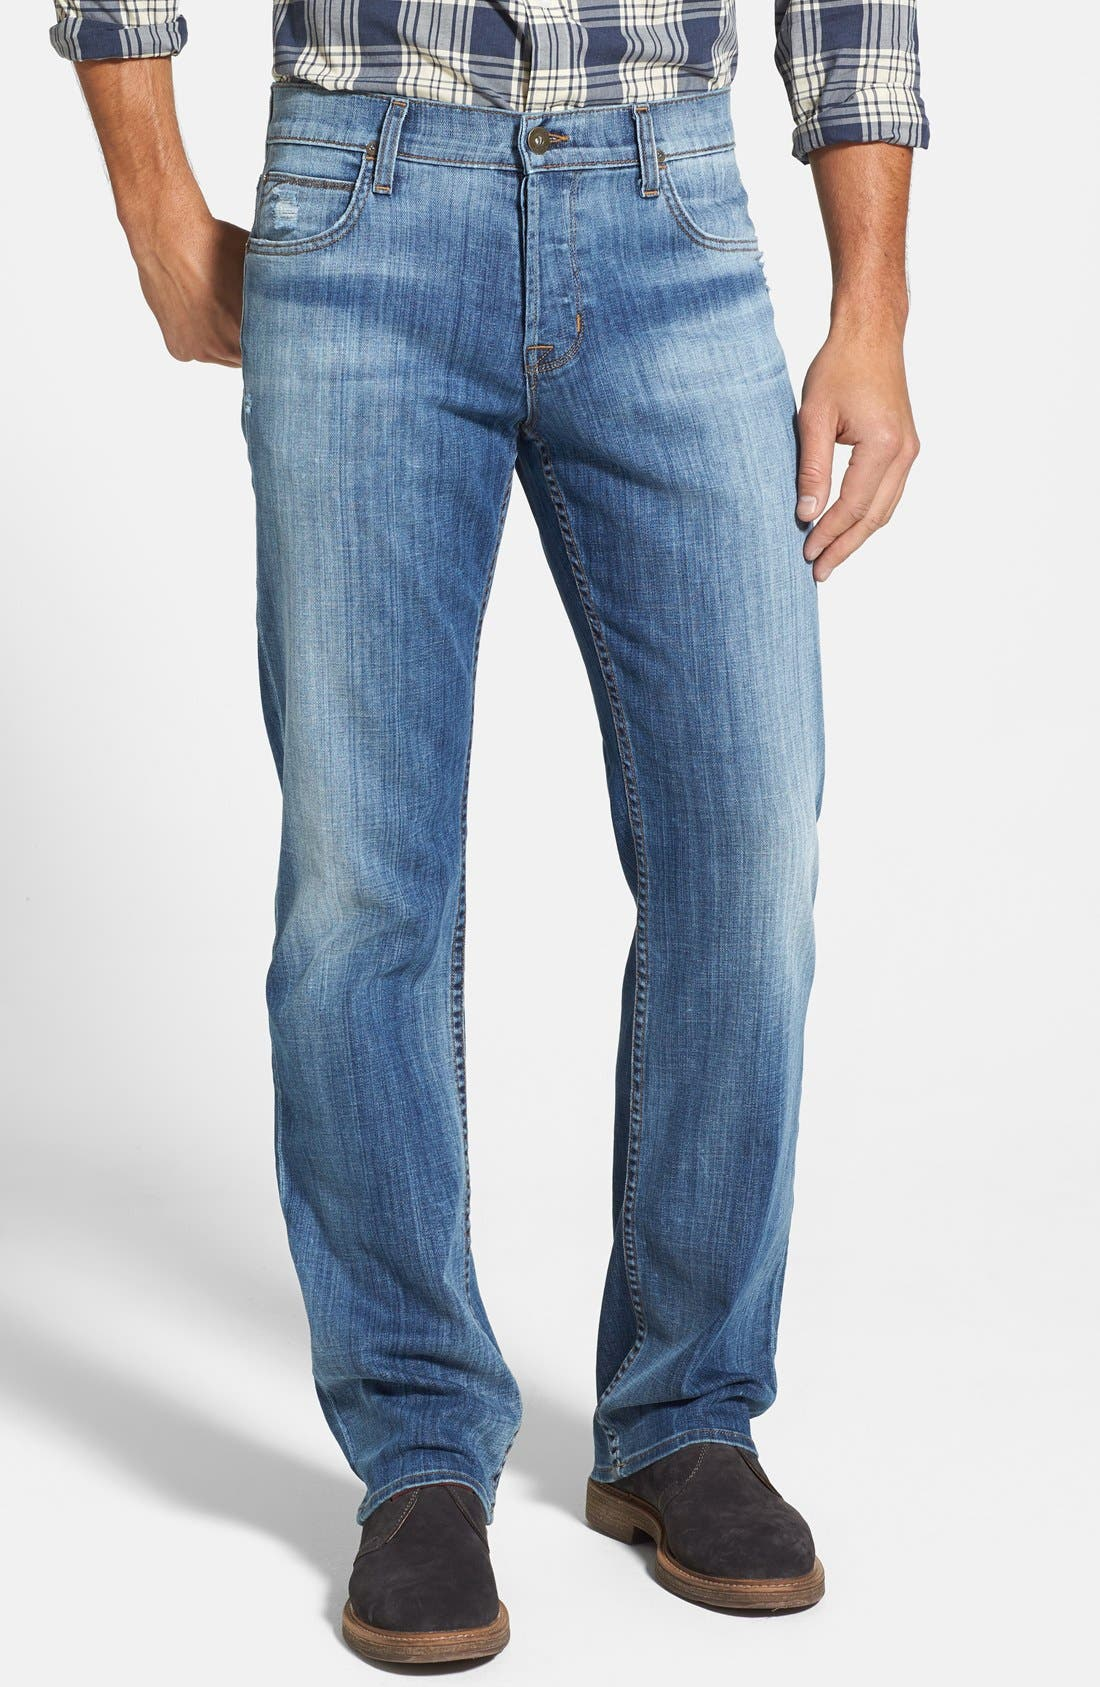 Main Image - Hudson Jeans 'Wilde' Relaxed Fit Jeans (Melt Into The Sea)